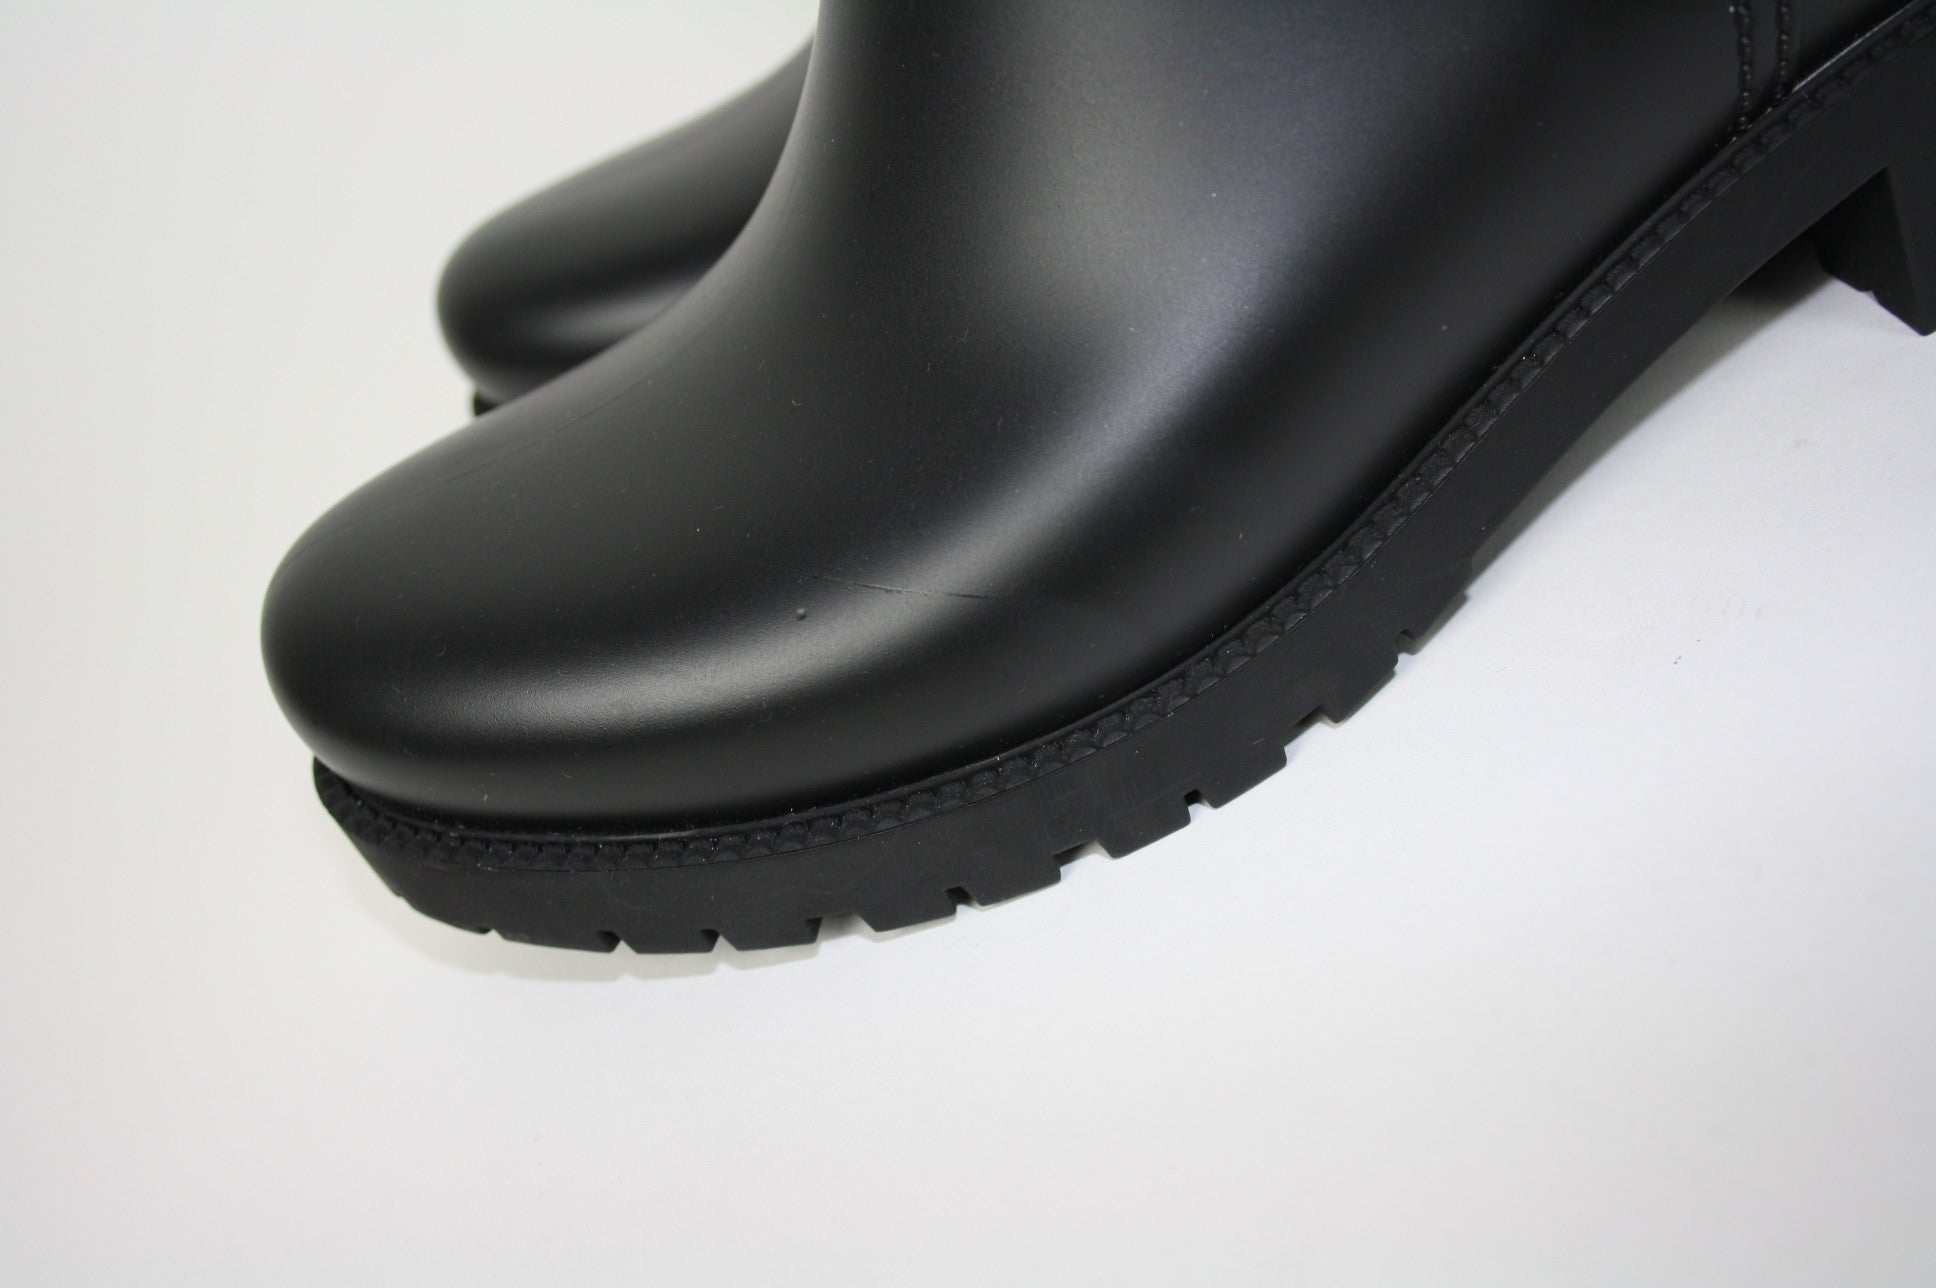 Philipp Plein Rubber Boots, 38 - Iconics Preloved Luxury